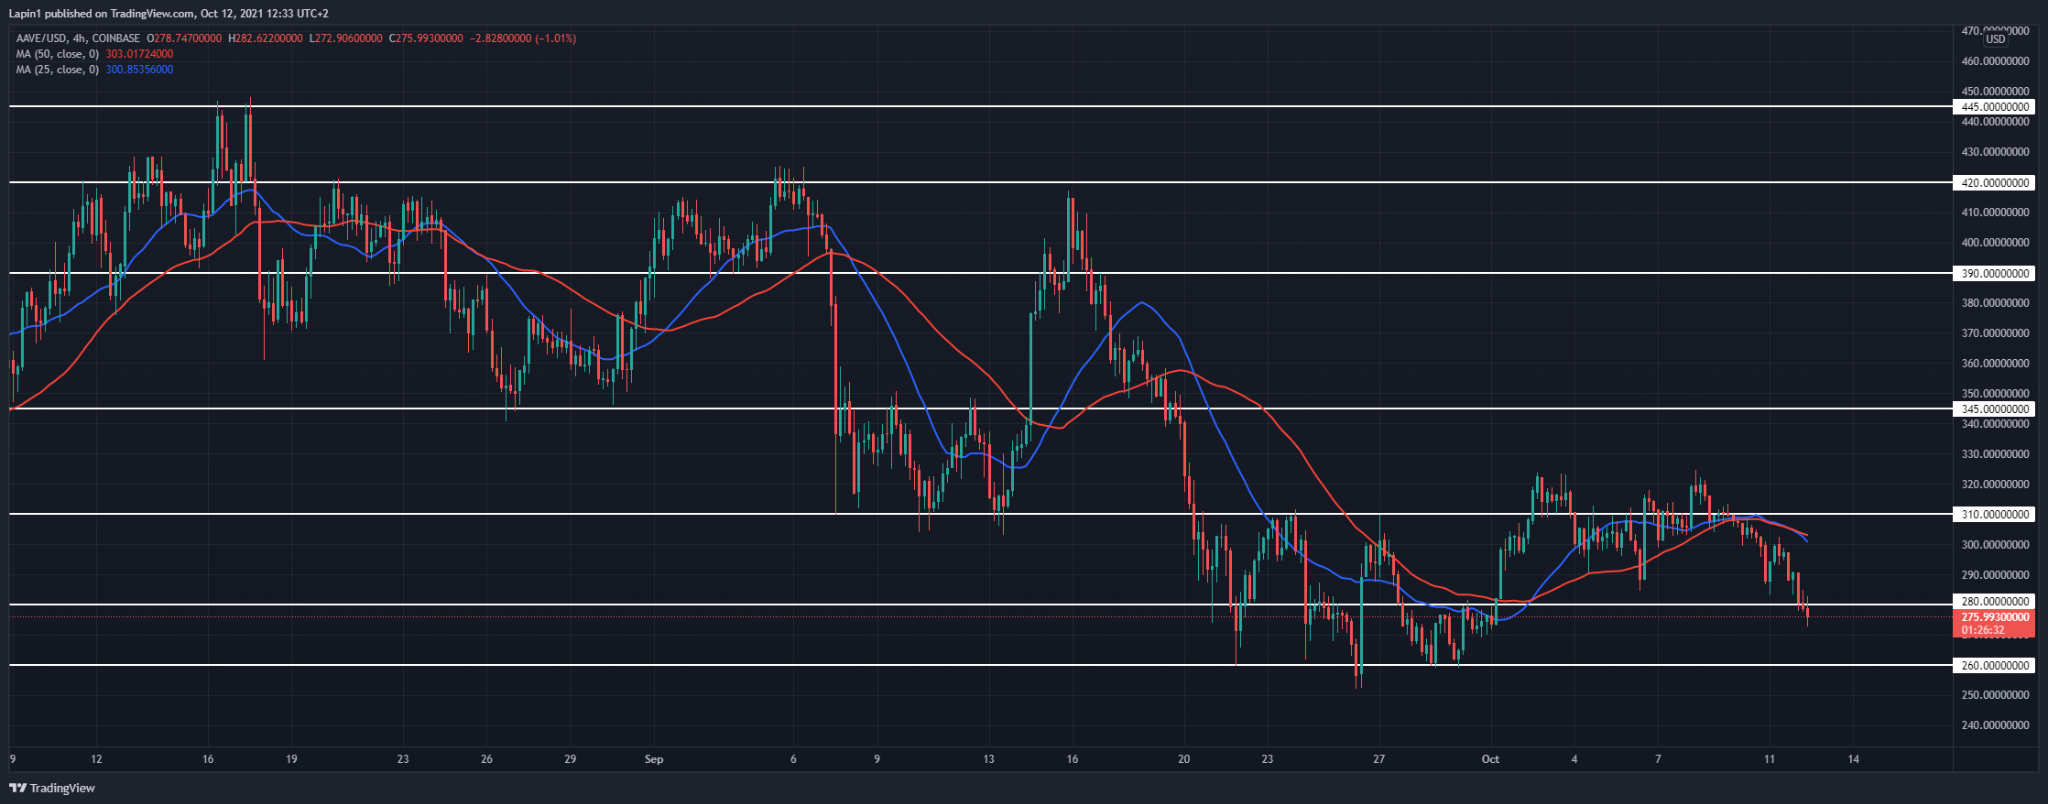 Aave Price Analysis: AAVE moves below $280 support, more downside to follow?